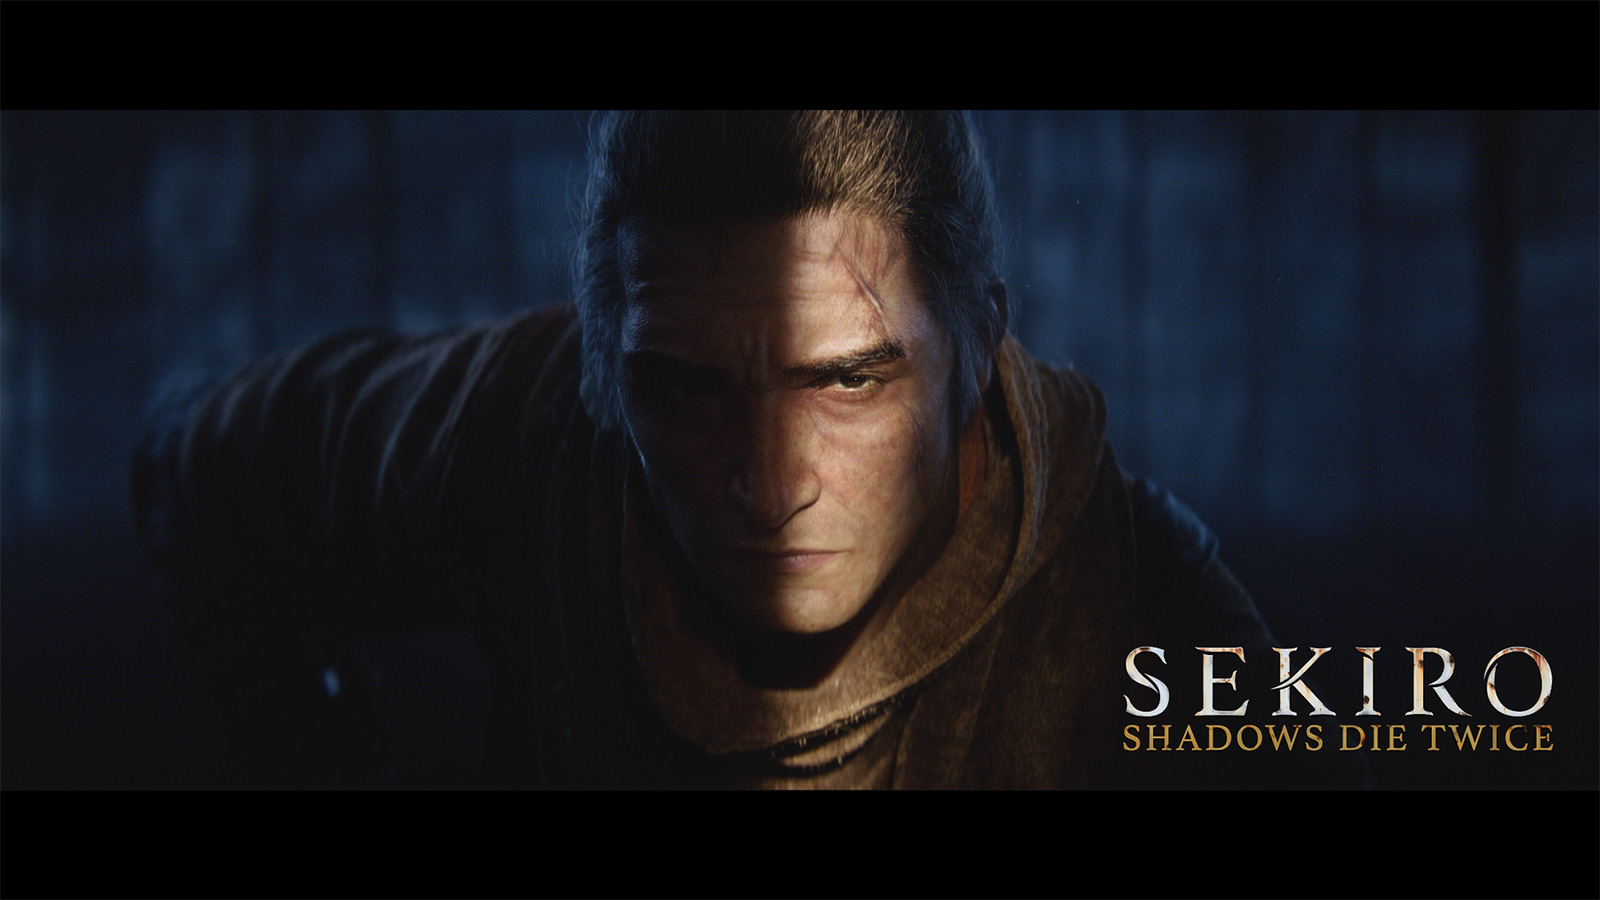 Sekiro: Shadows Die Twice trailer